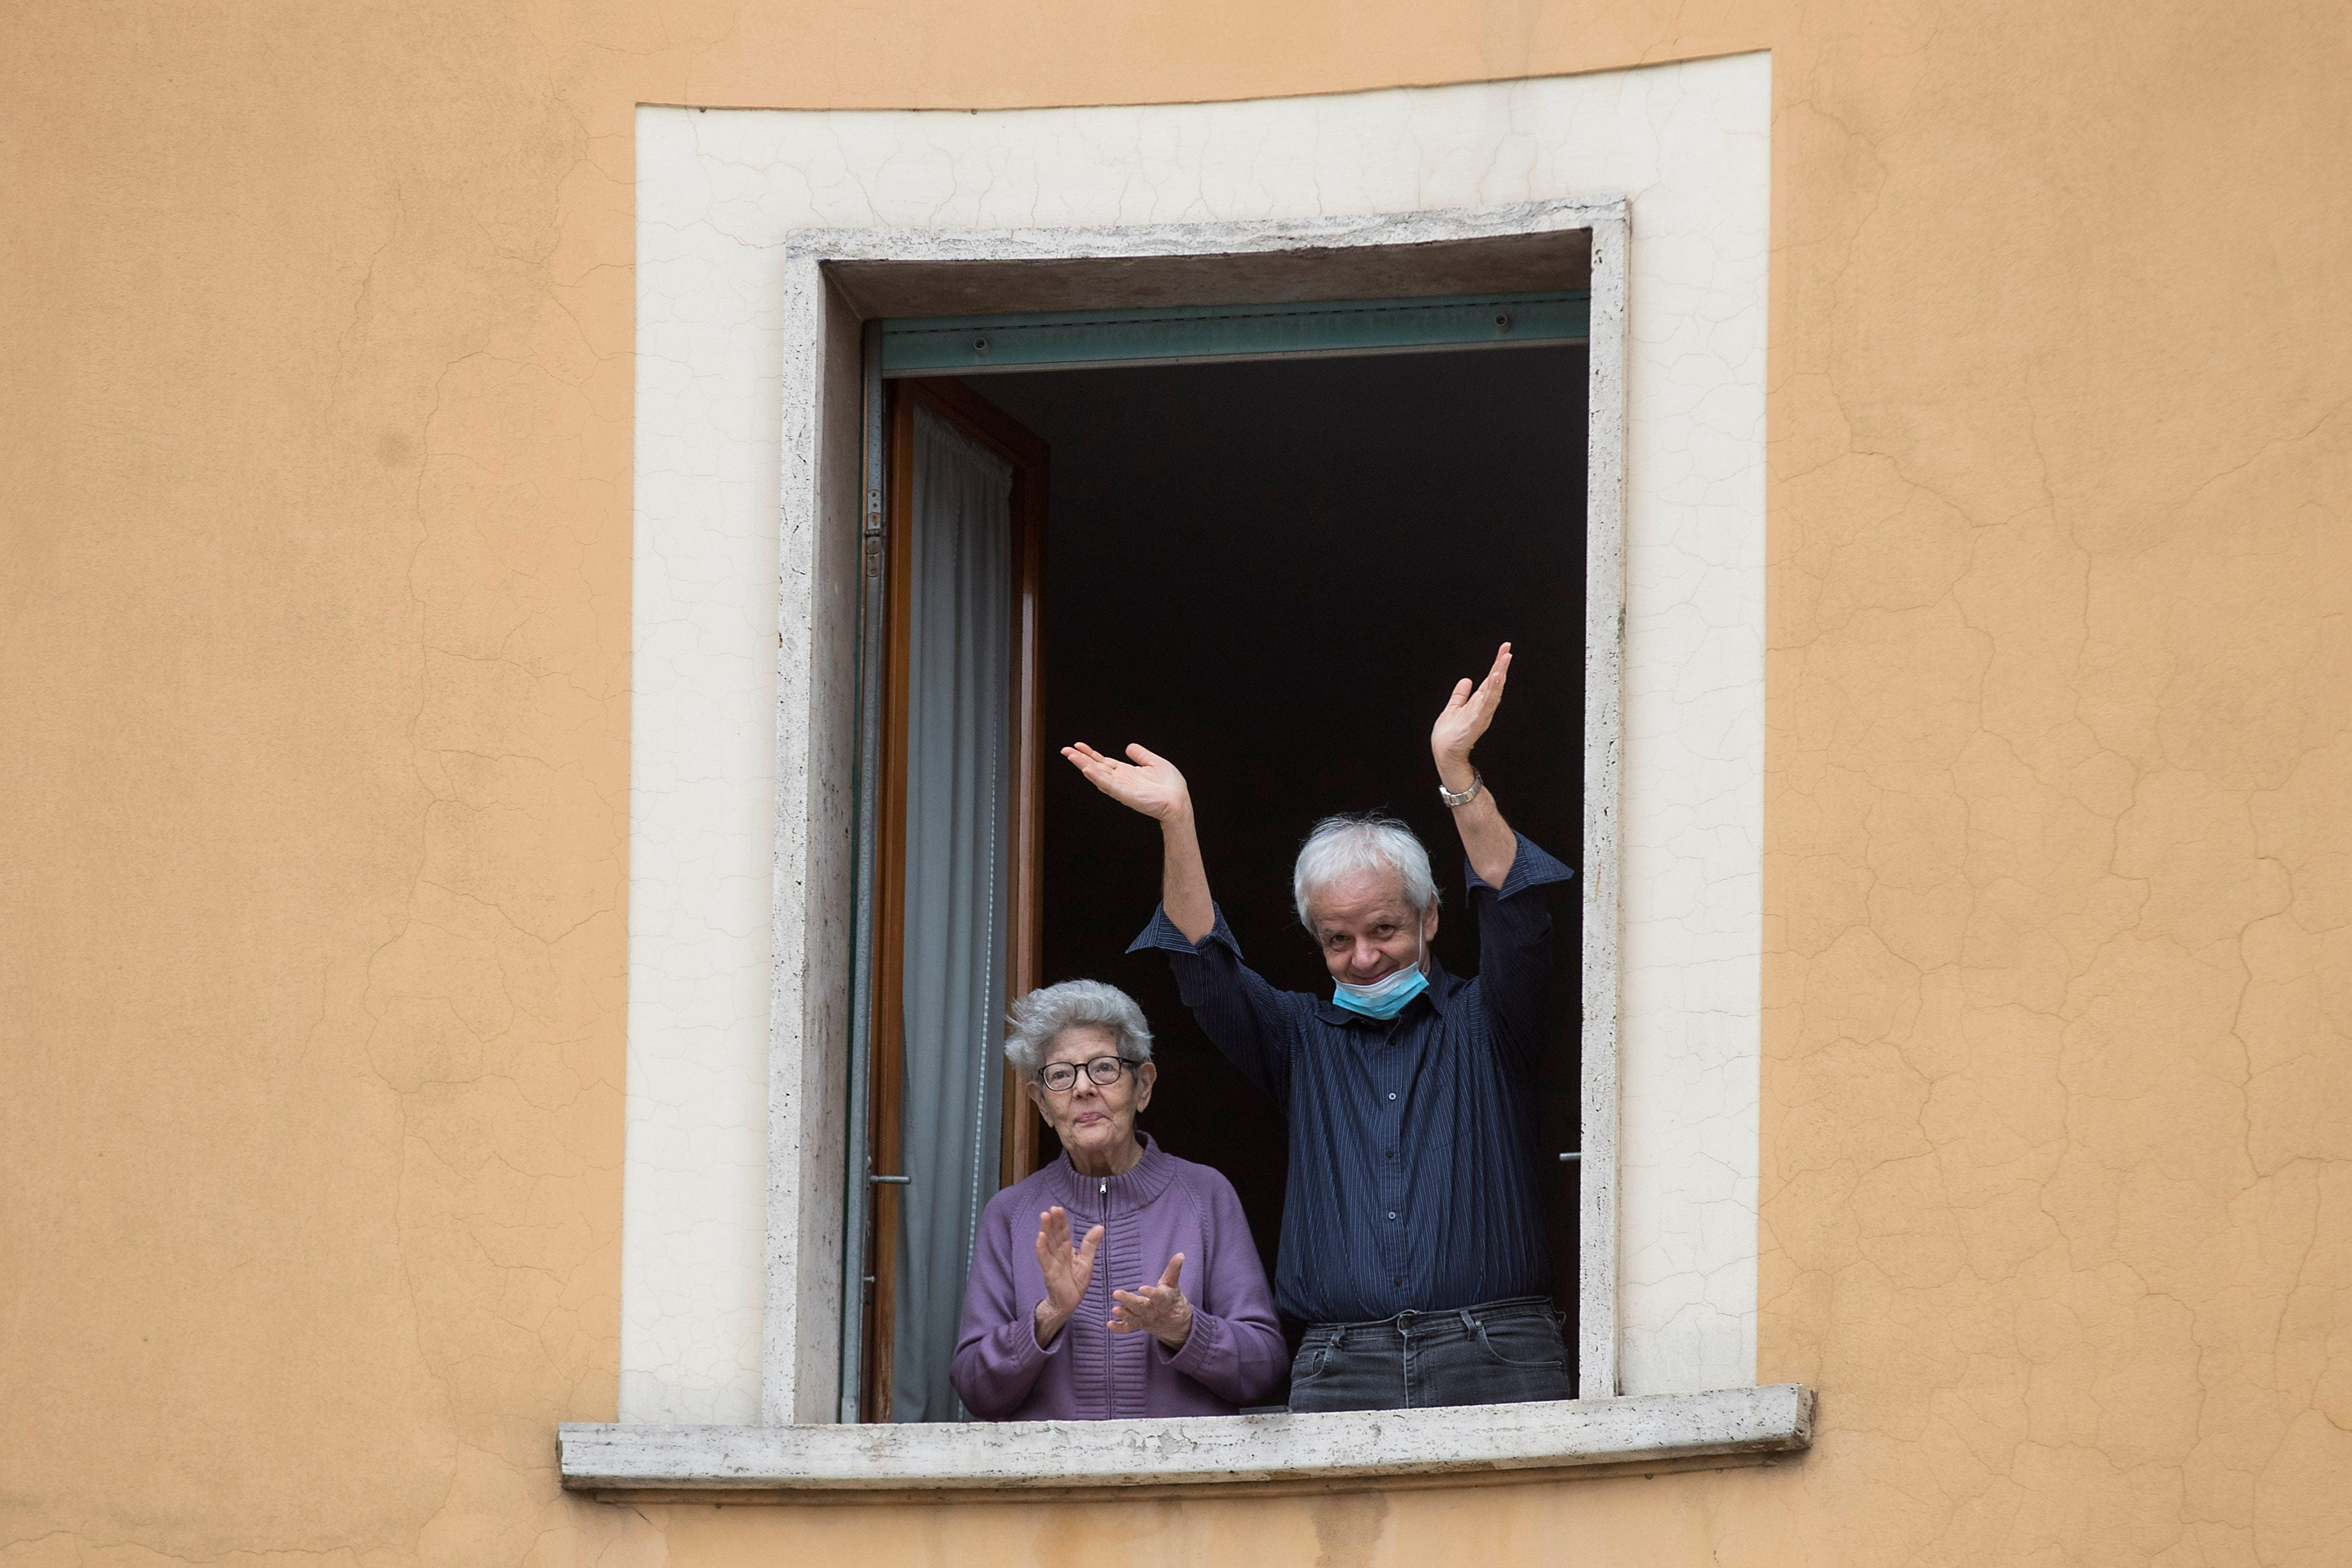 Slide 77 of 113: People clap their hands and wave, in Rome, Saturday, March 14, 2020. At noon in Italy, people came out on their balconies, terraces, gardens or simply leaned out from open windows to clap for several minute in a gesture of thanks for the doctors, nurses, other hospital staff and ambulance crews who have been treating and helping infected patients.